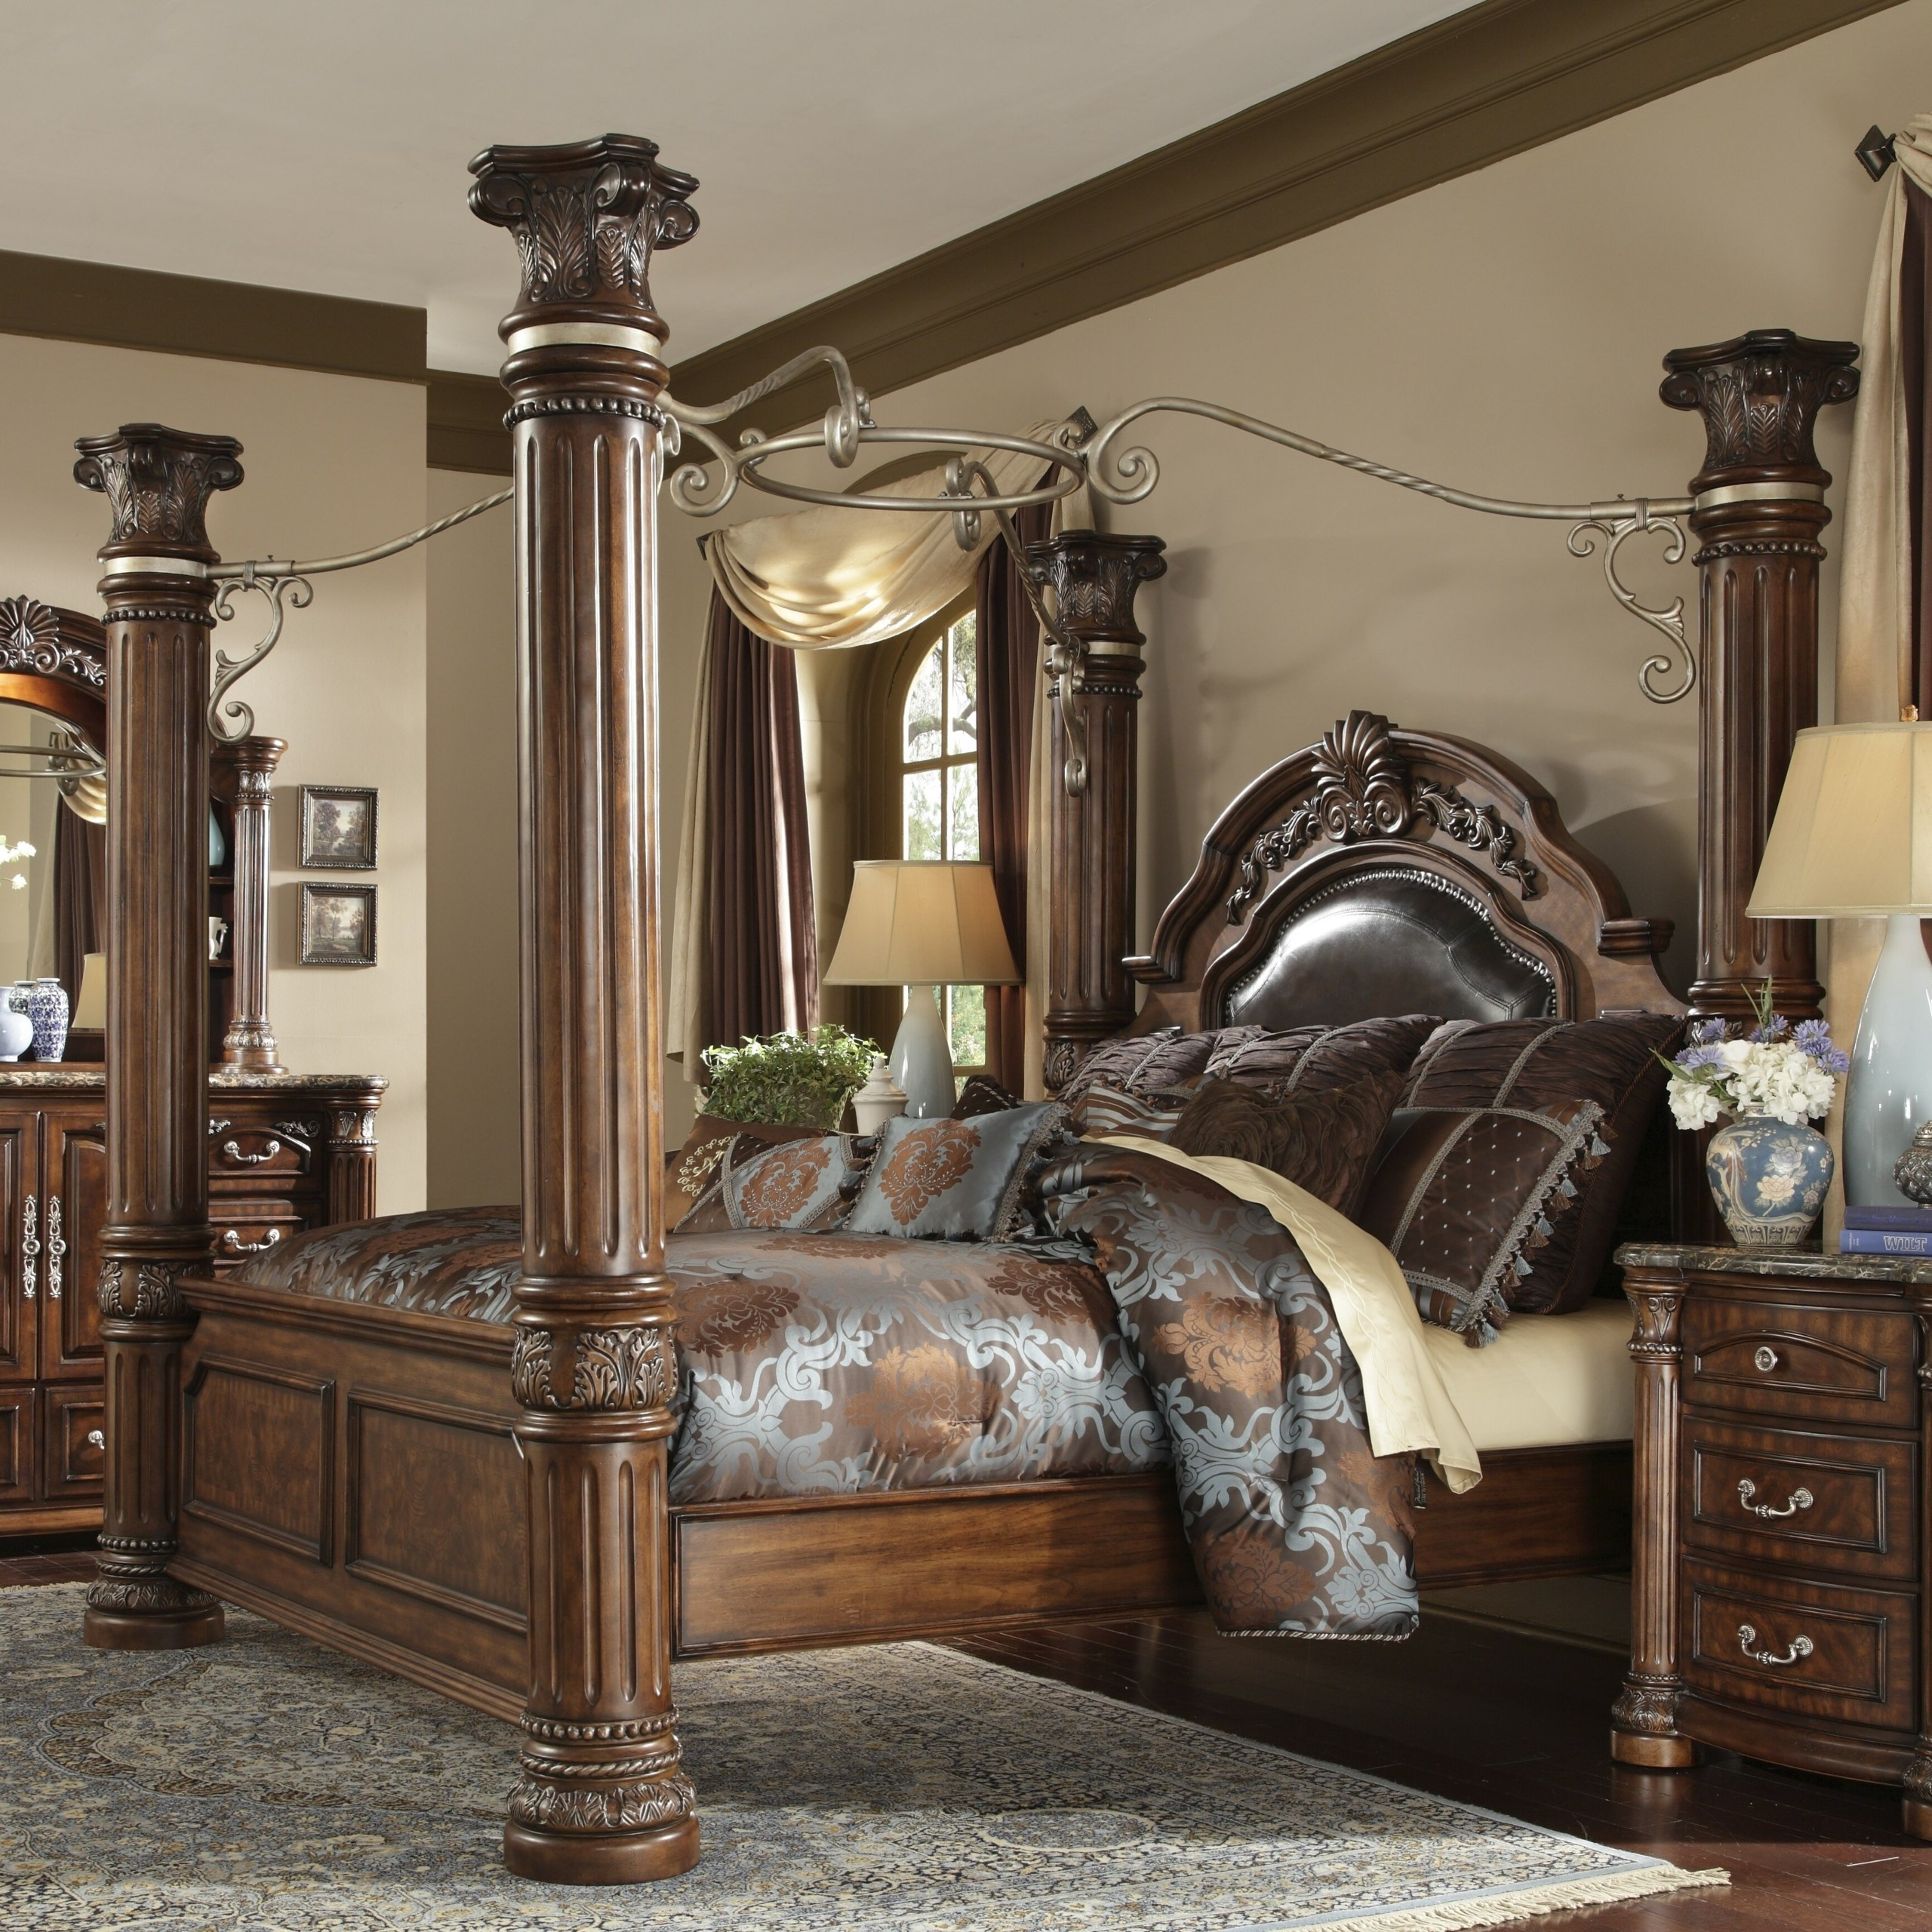 Luxury Cheap King Size Bedroom Sets Decoration